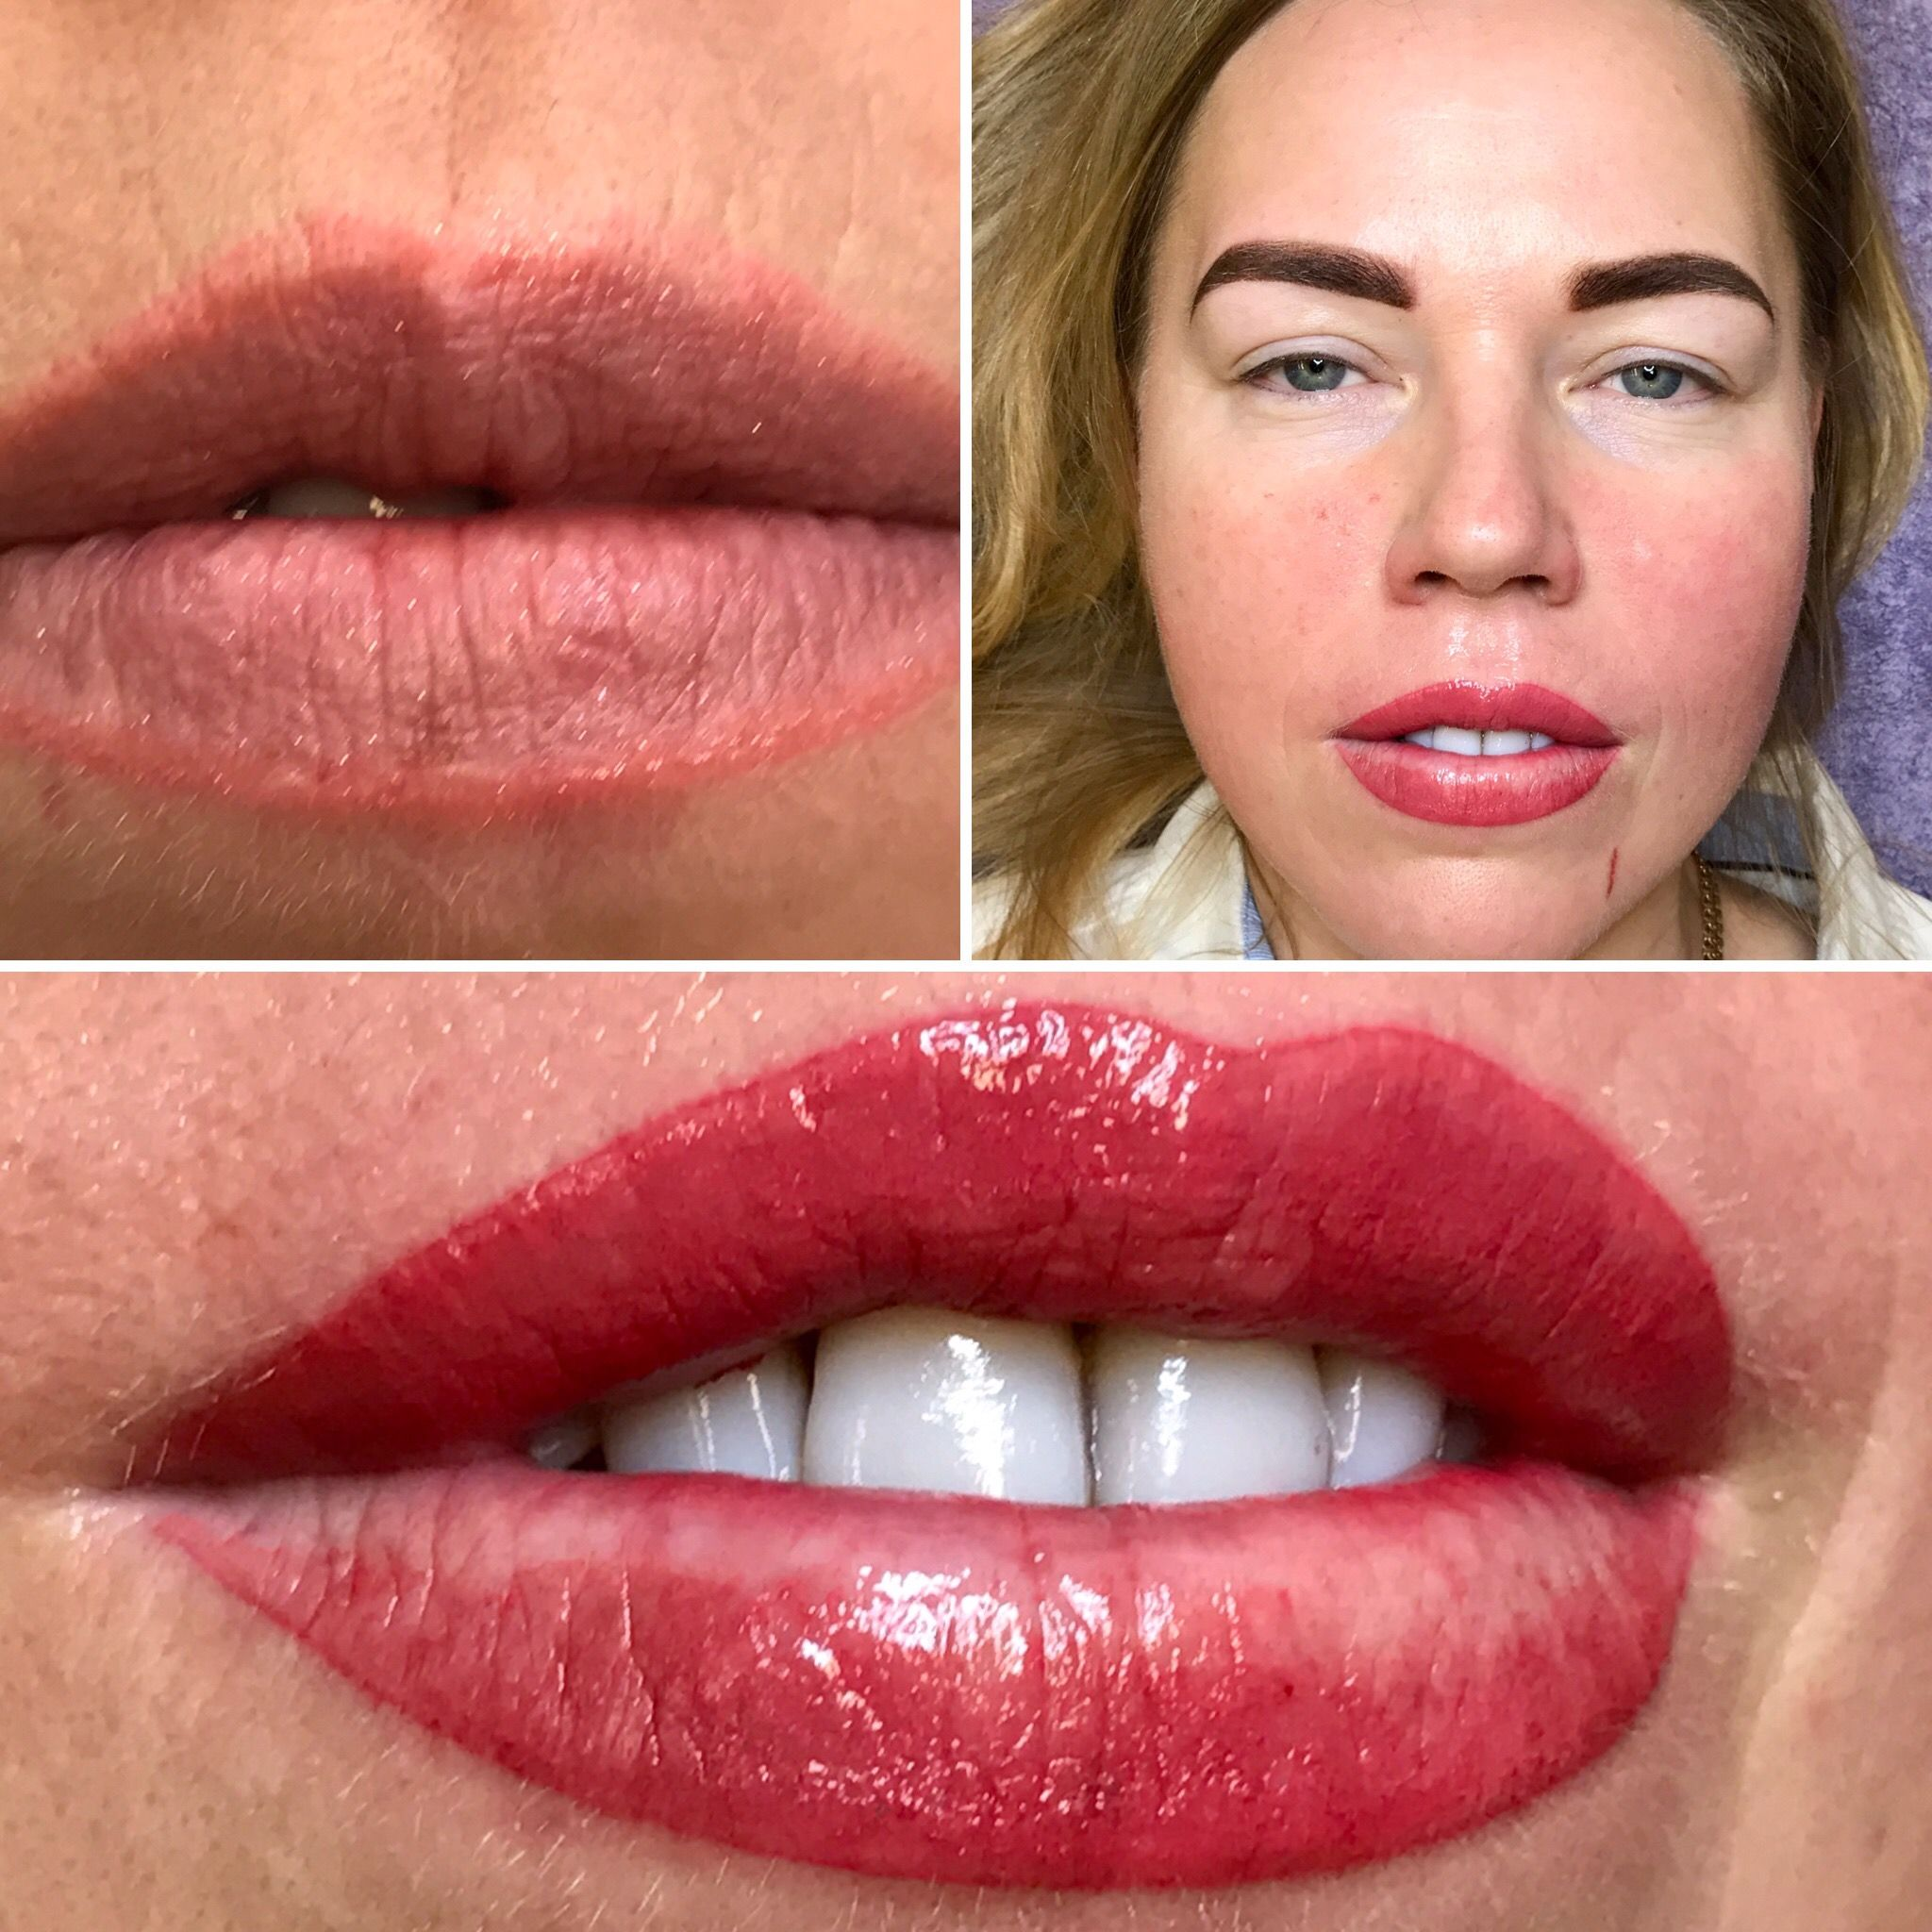 Stardust Brows Aquarelle Lips Tattoos S Technique Call 586 571